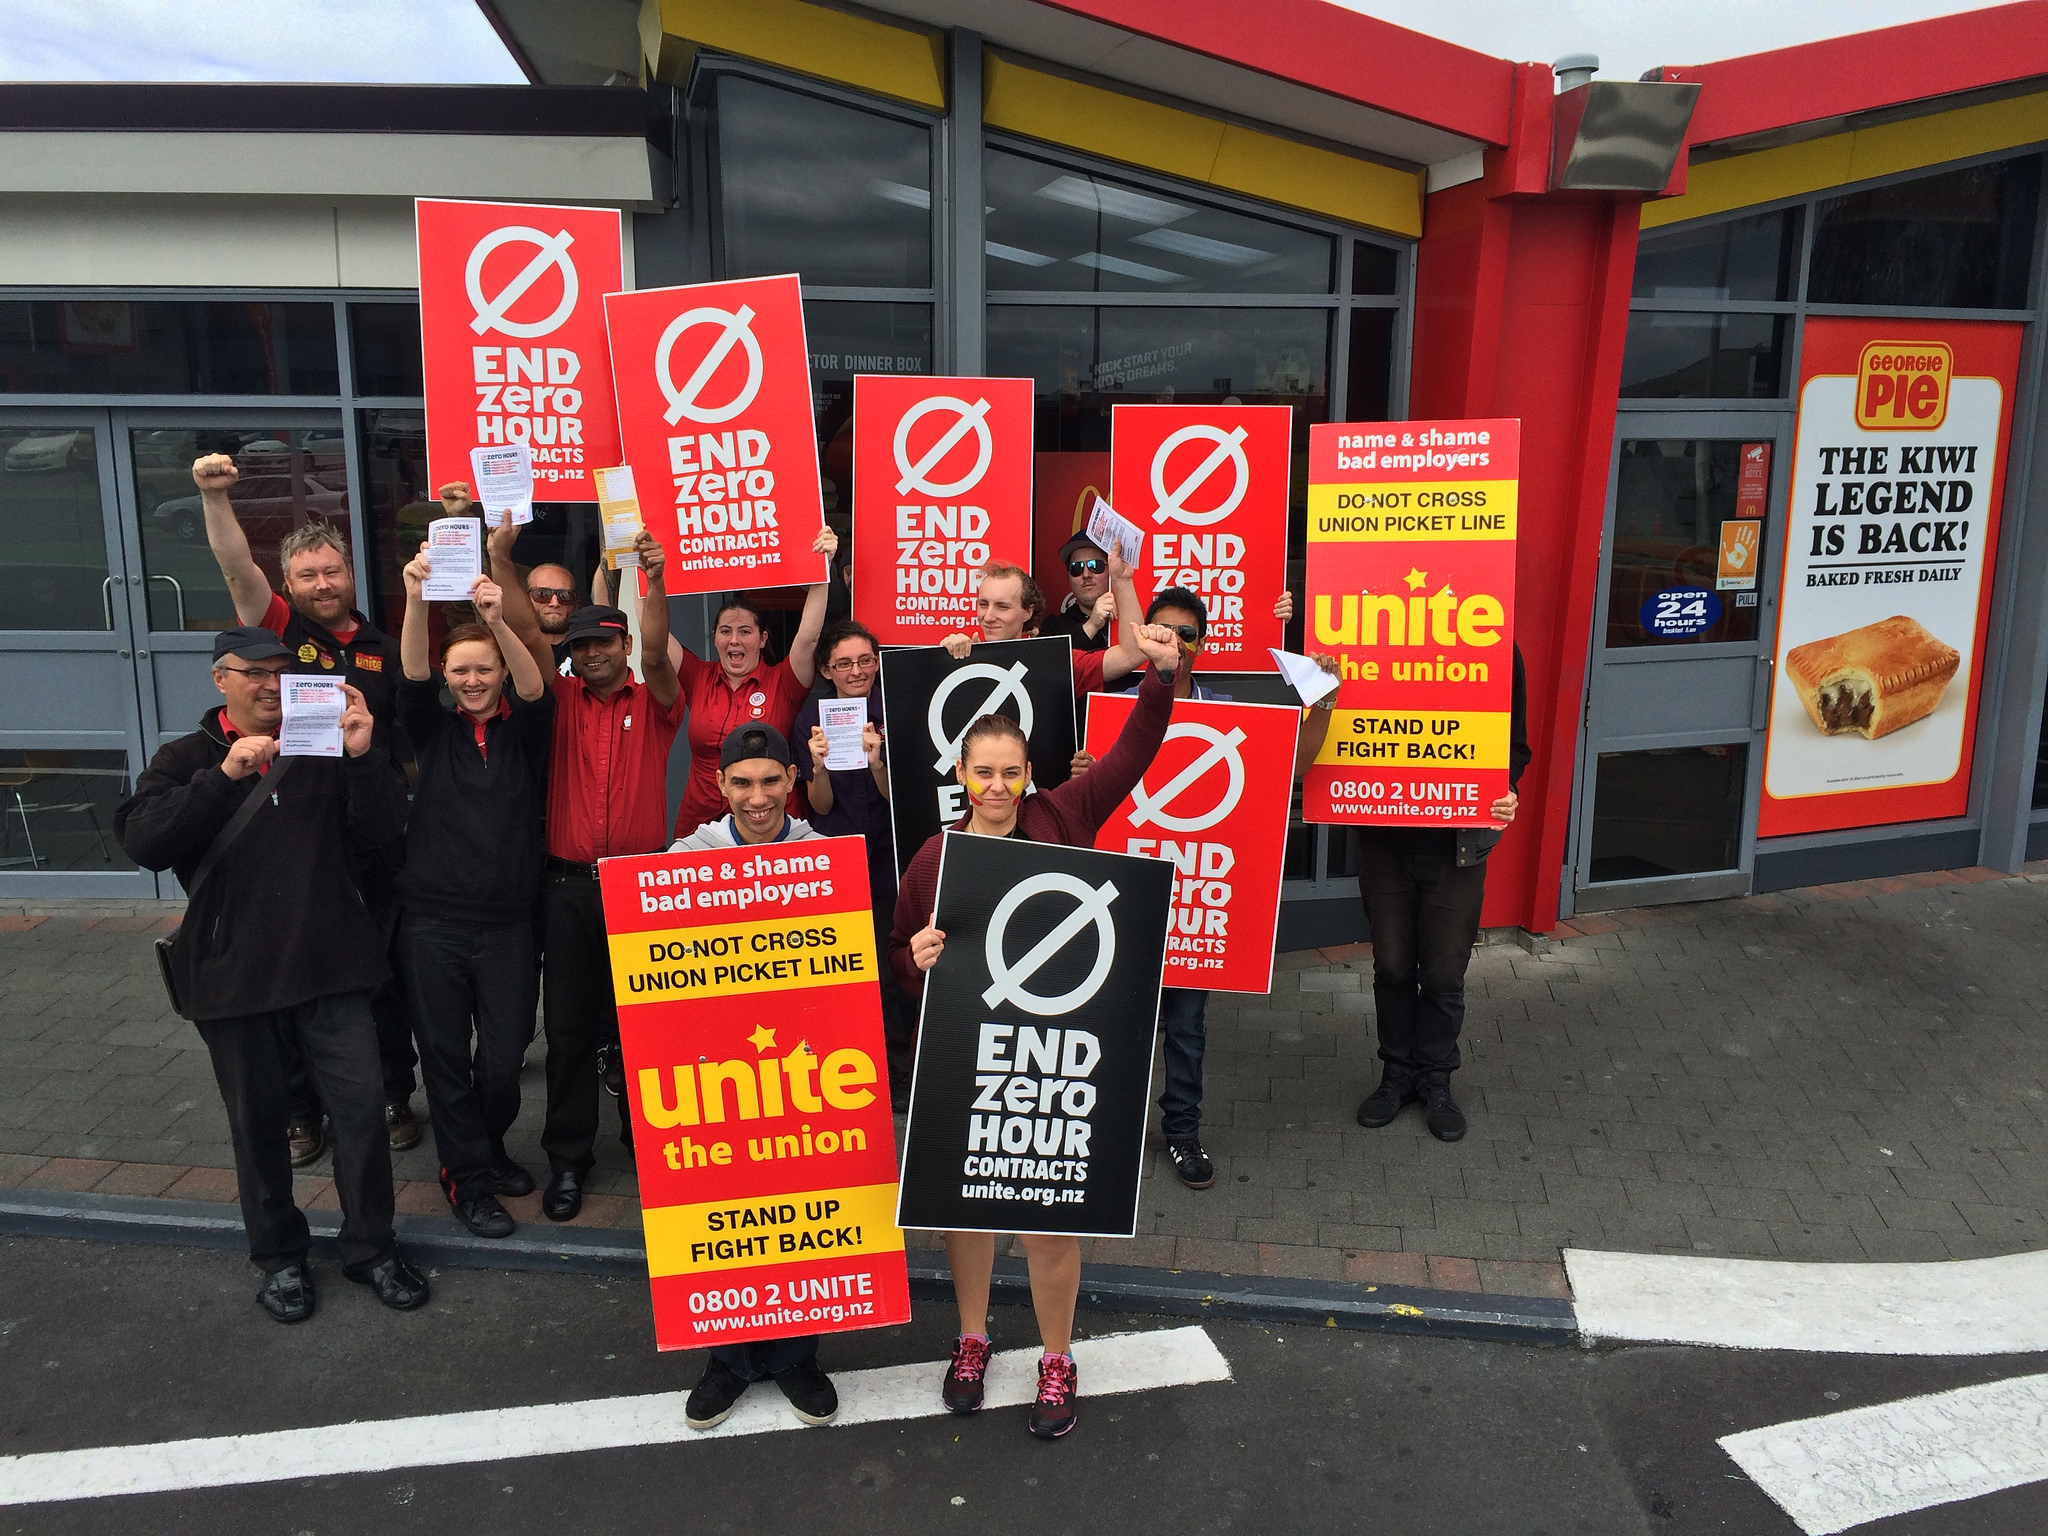 Workers outside a McDonalds Restaurant holding End Zero Hours placards